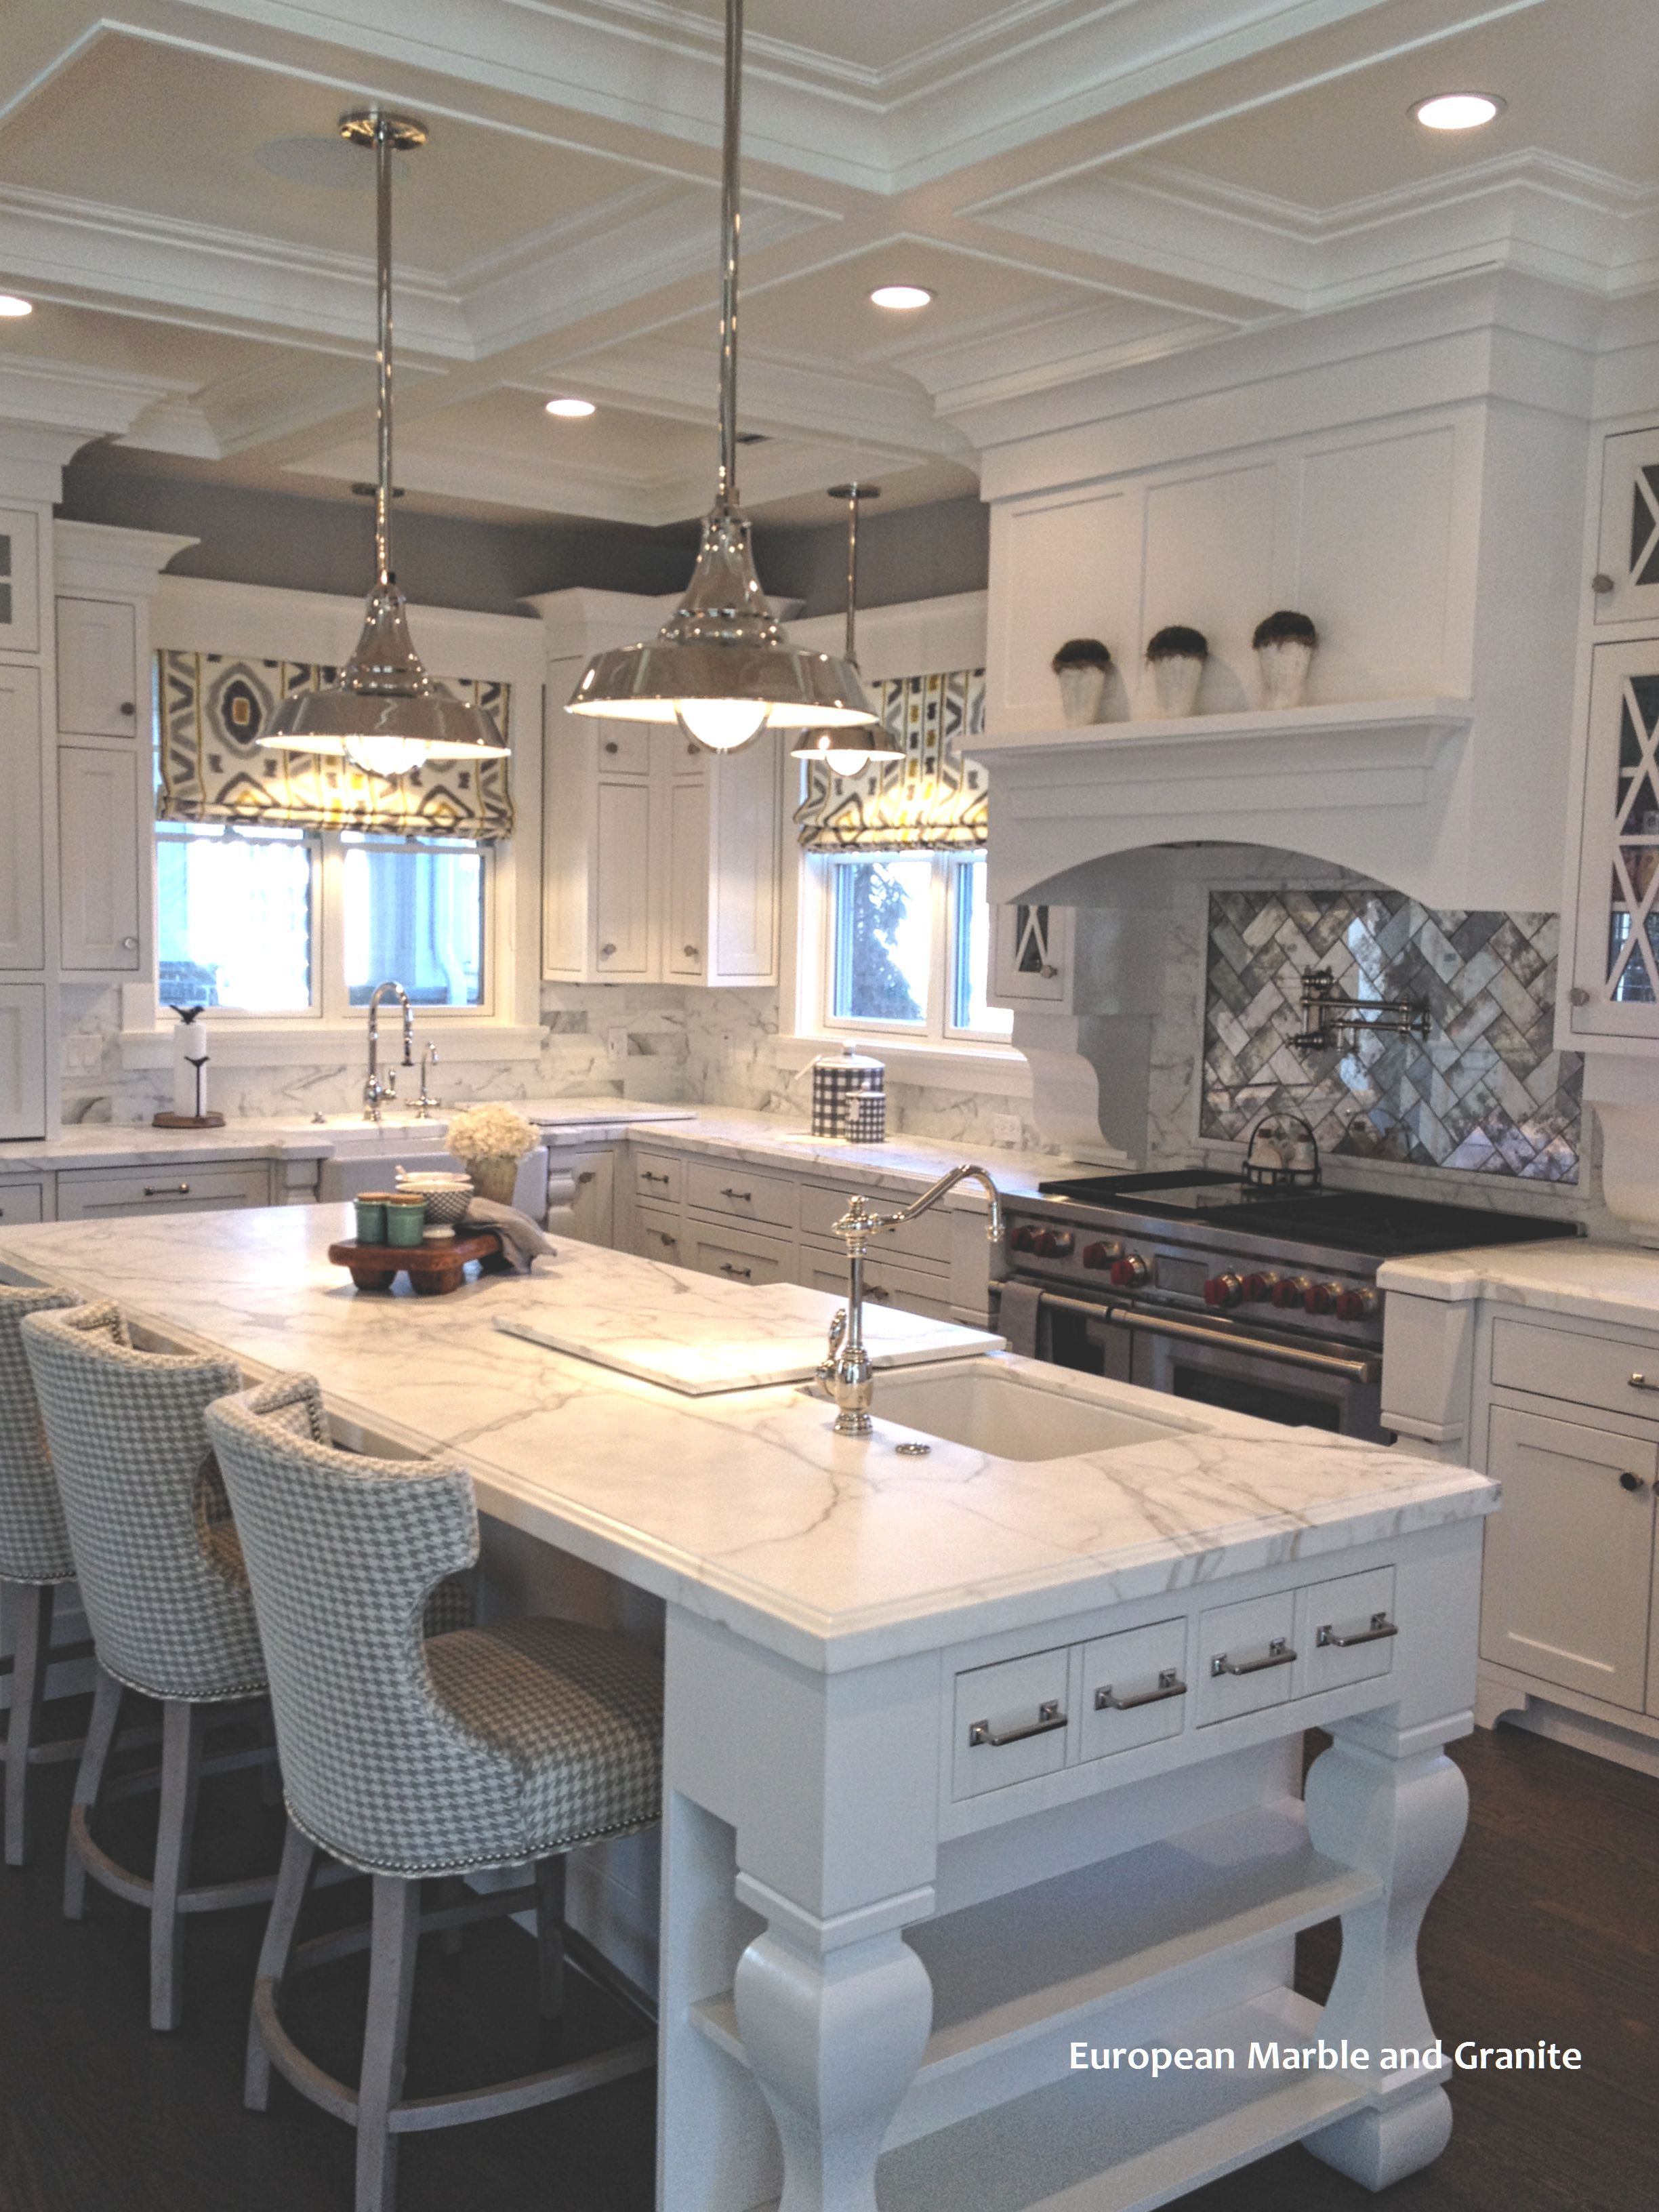 Antique And Mirrored Tile Backsplash Ideas White Kitchen